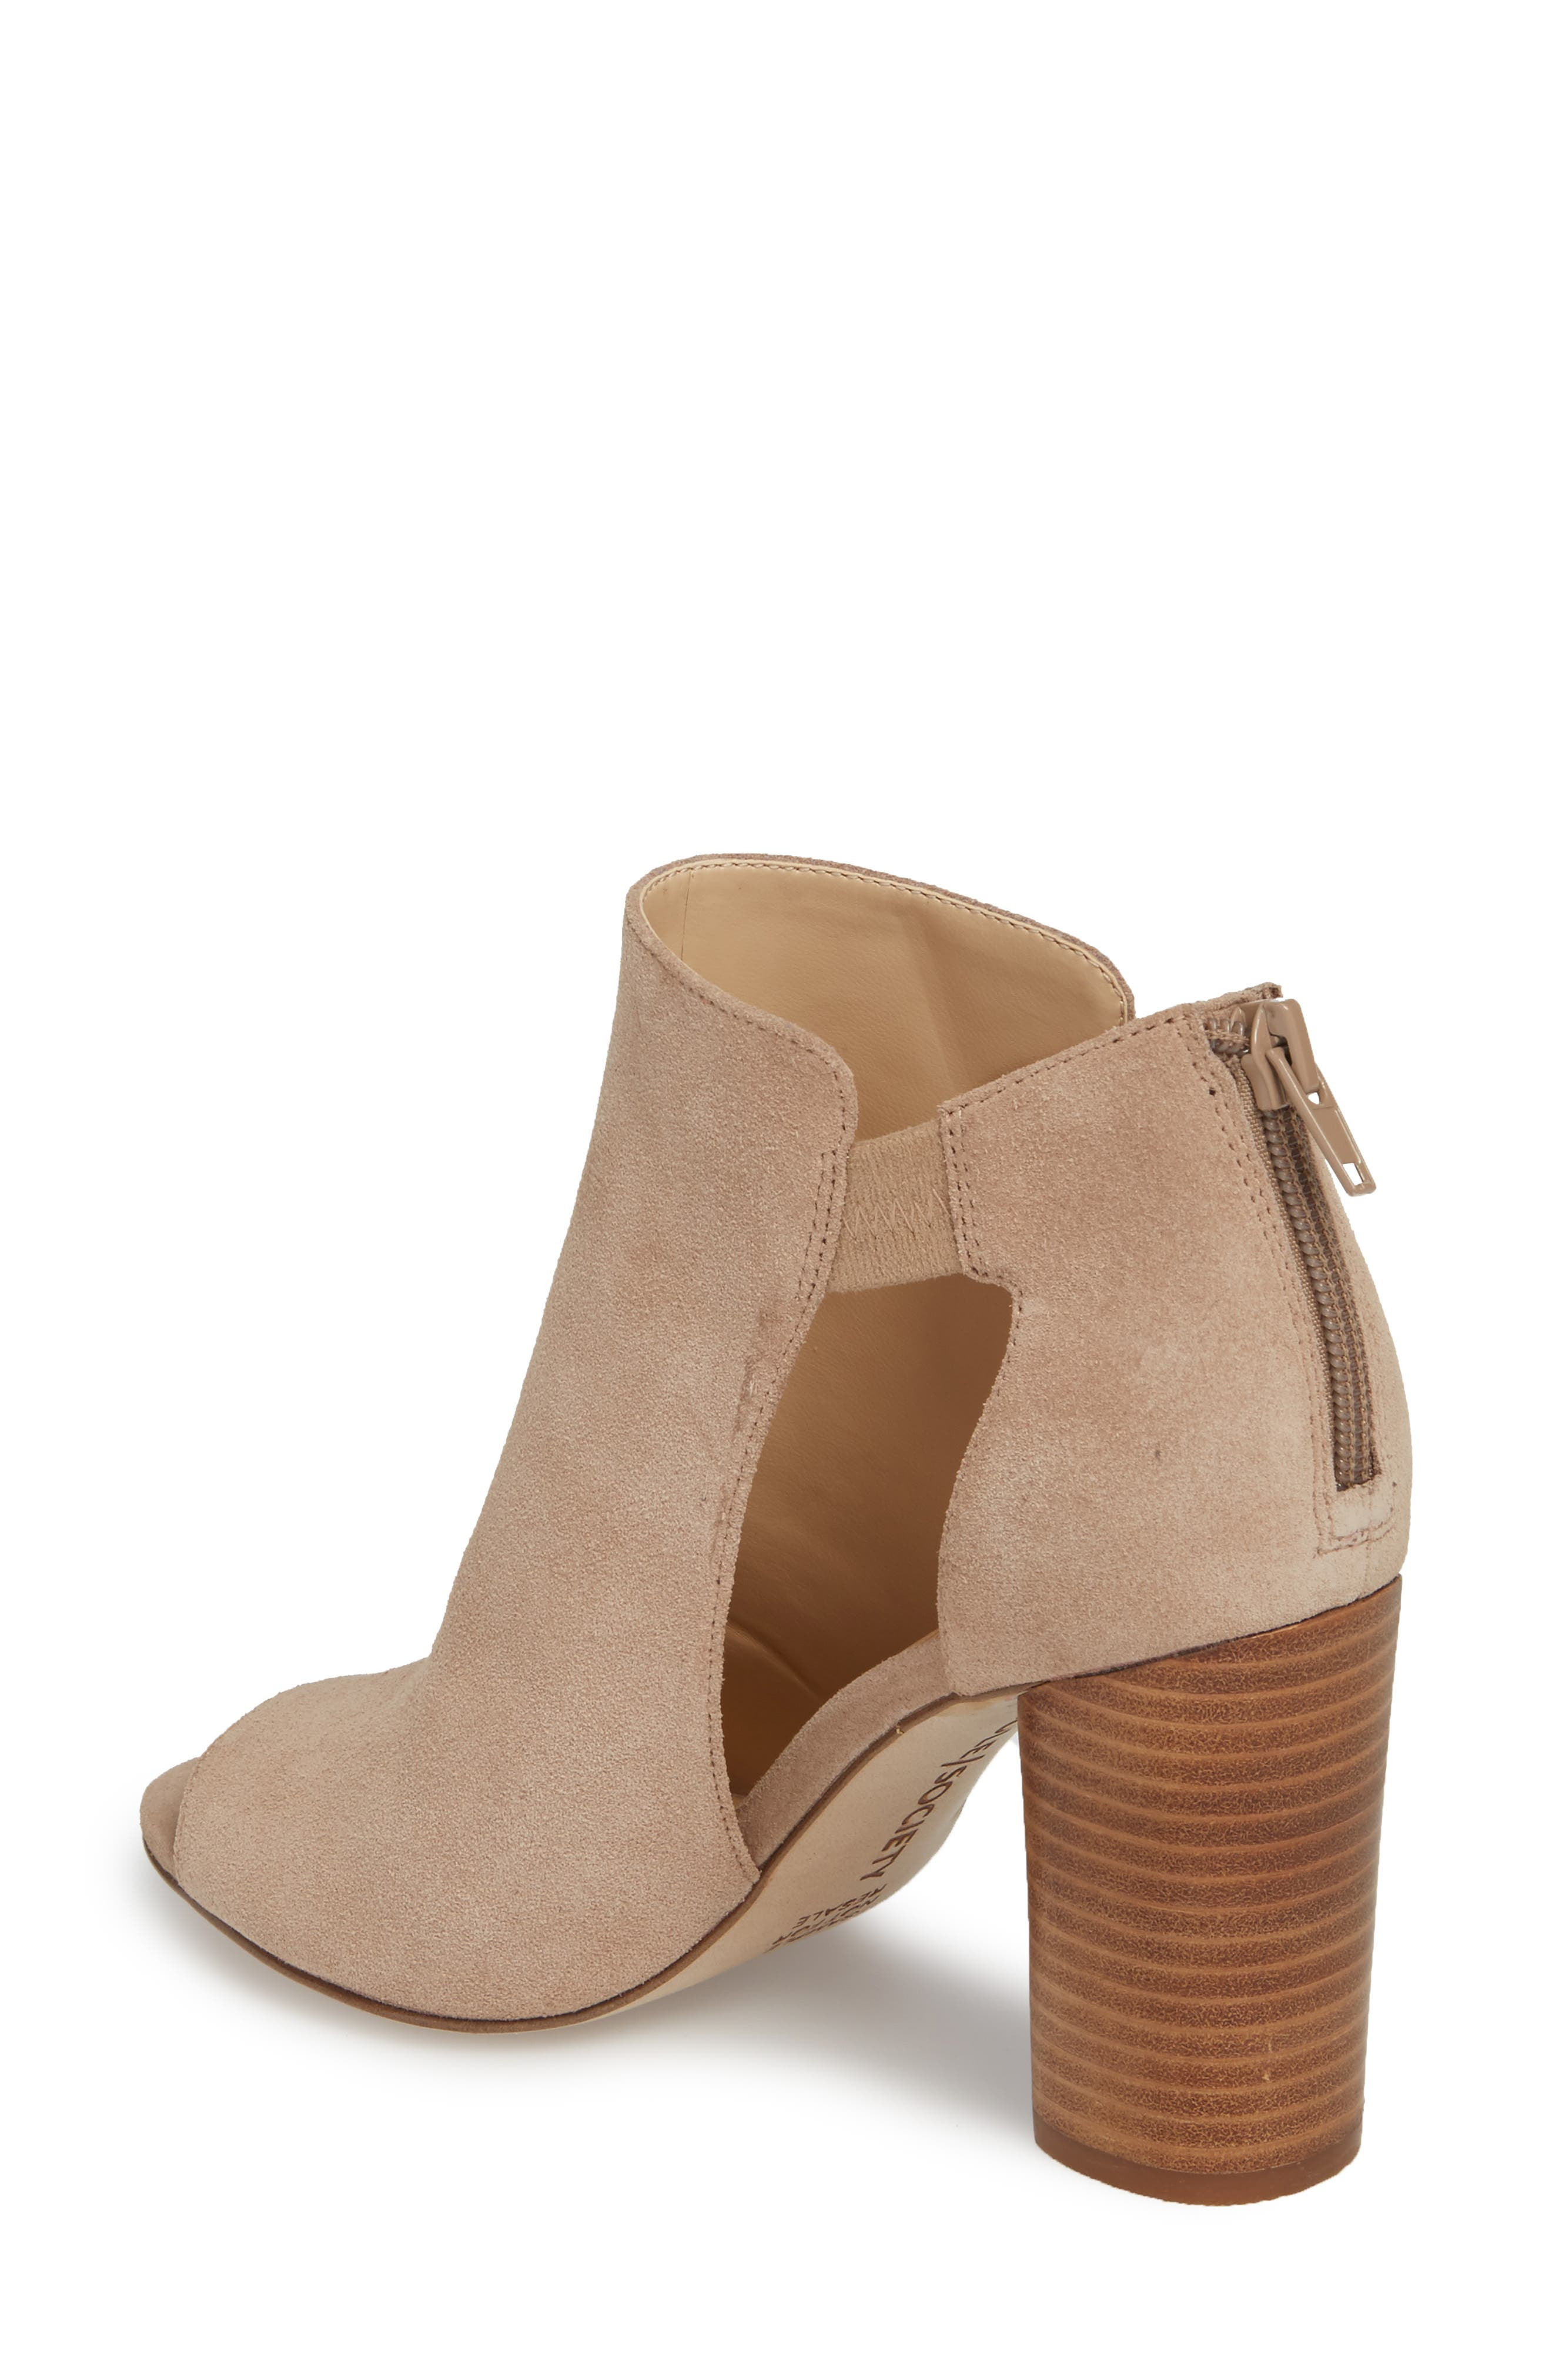 Sally Column Heel Sandal,                             Alternate thumbnail 2, color,                             Warm Taupe Cow Suede